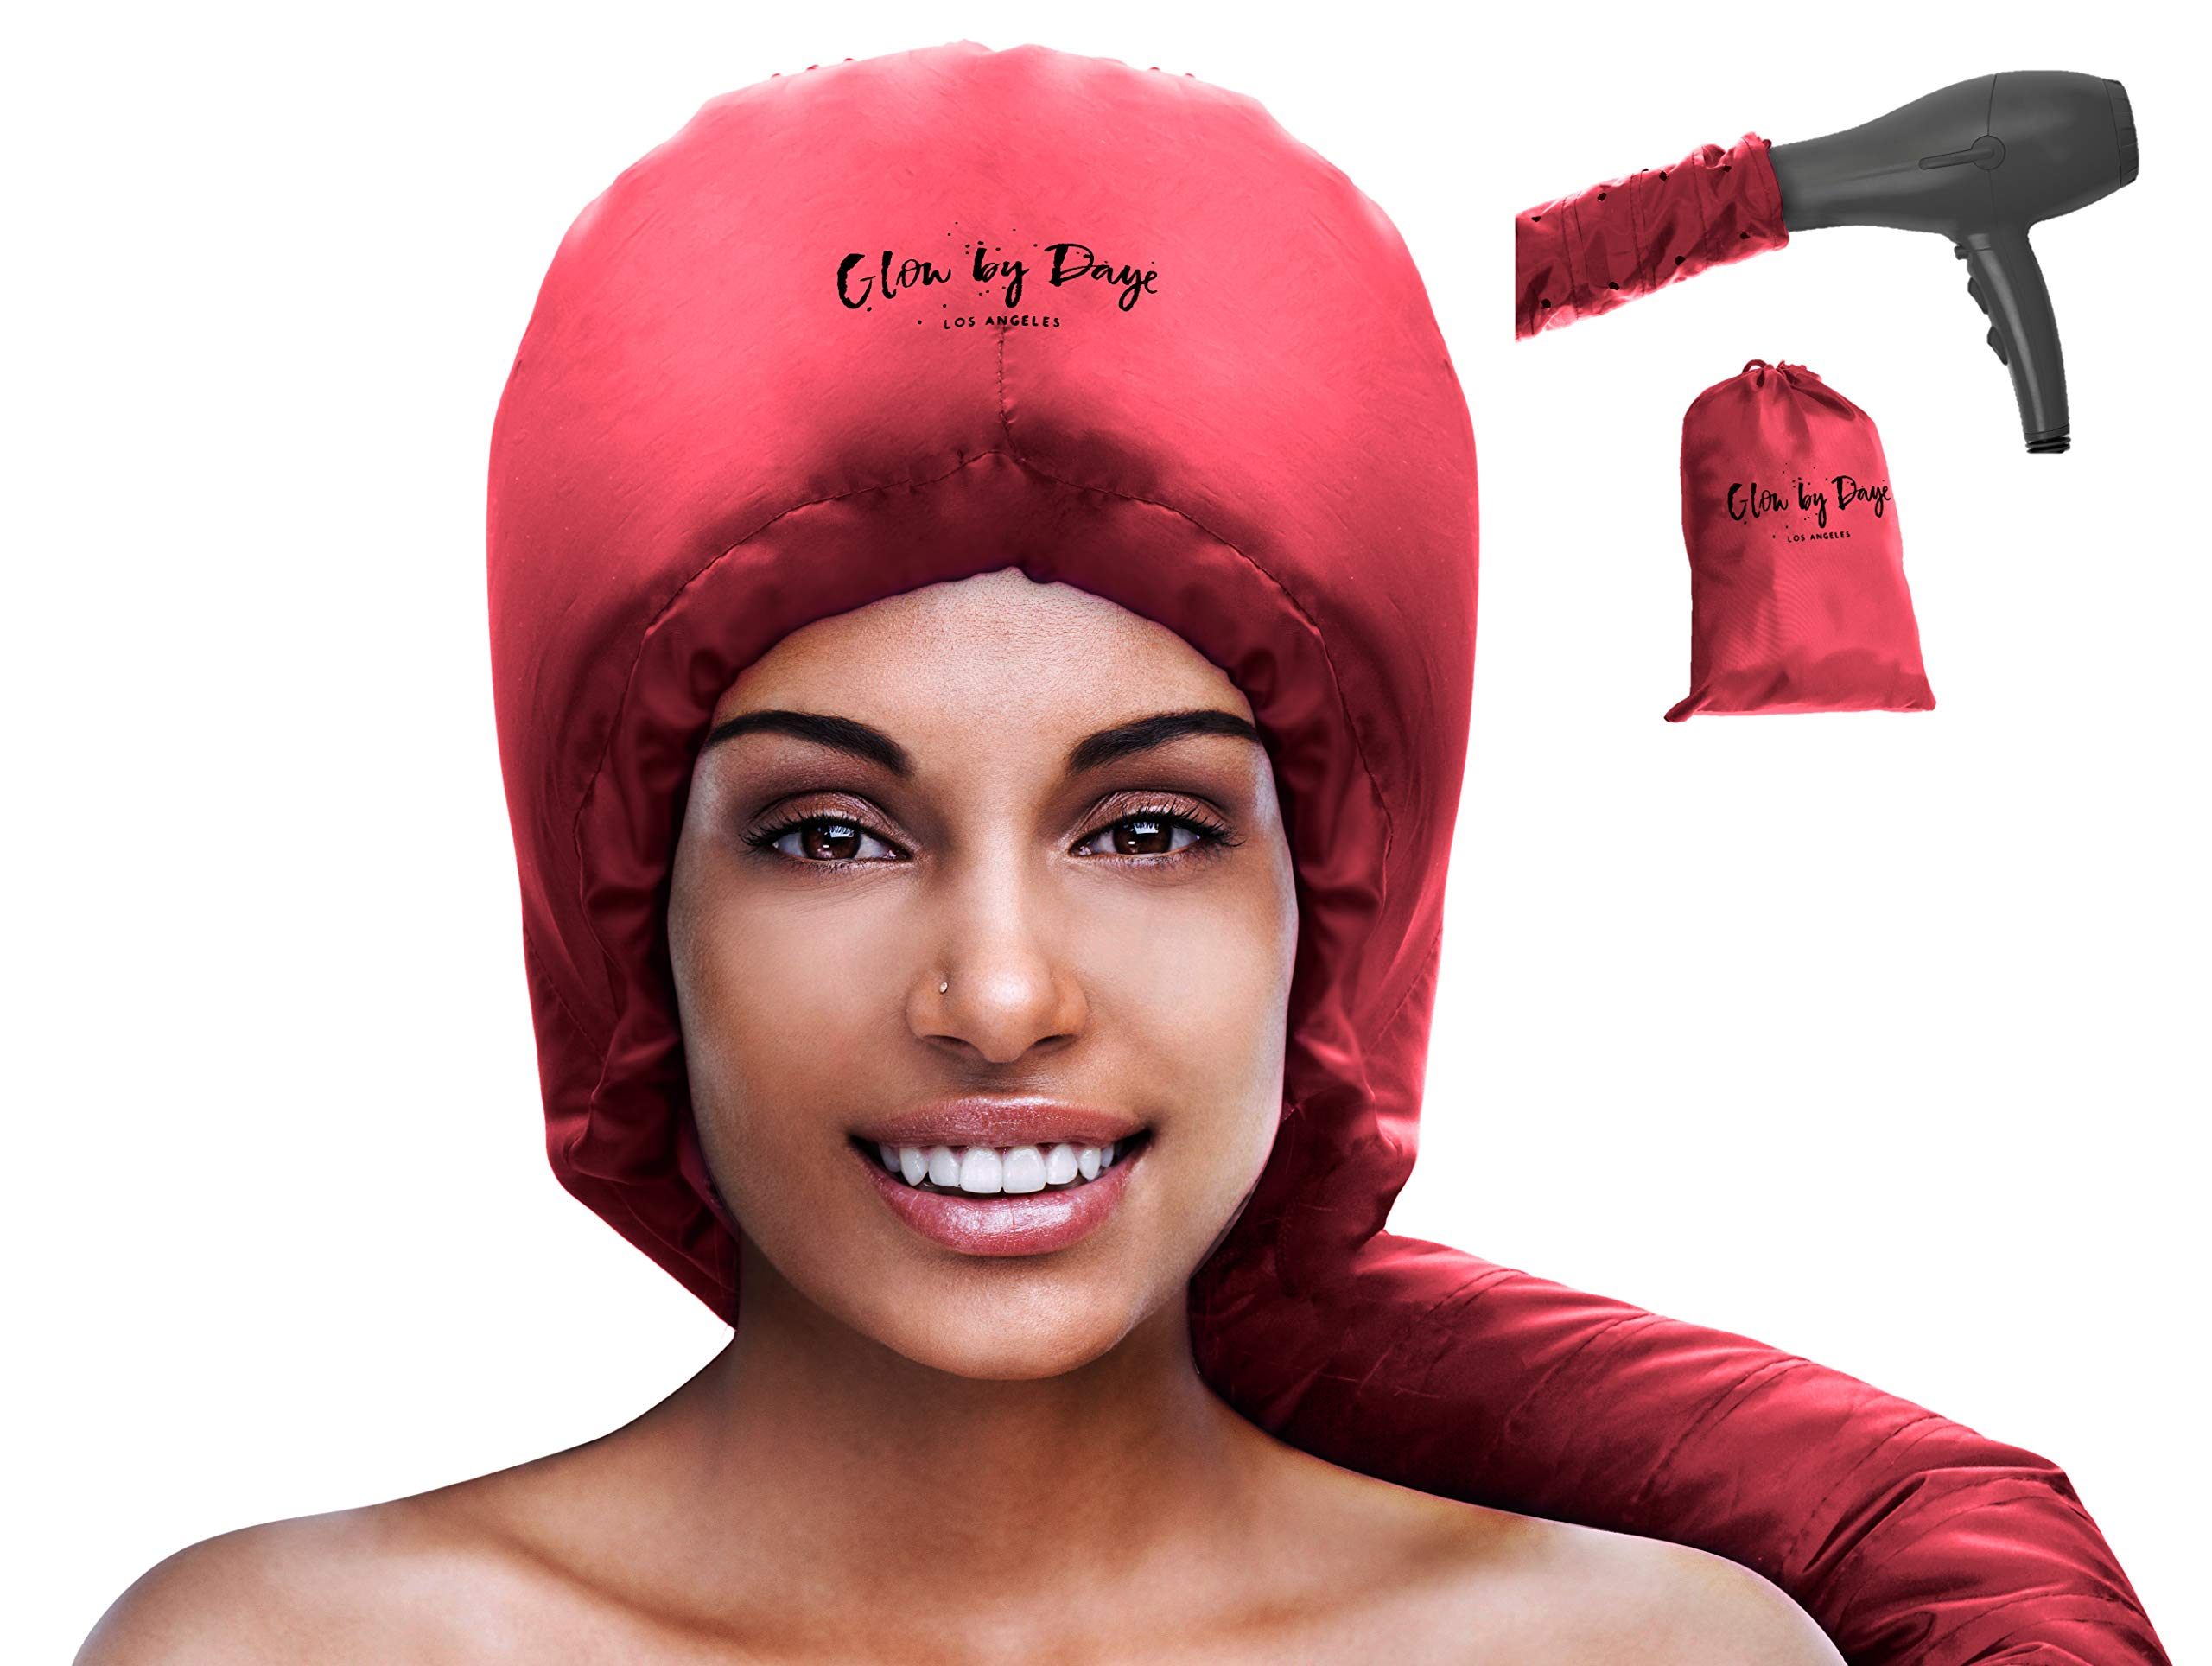 Bonnet Hood Hair Dryer Attachment- Soft, Adjustable Extra Large Hooded Bonnet for Hand Held Hair Dryer with Stretchable Grip and Extended Hose Length (Red)